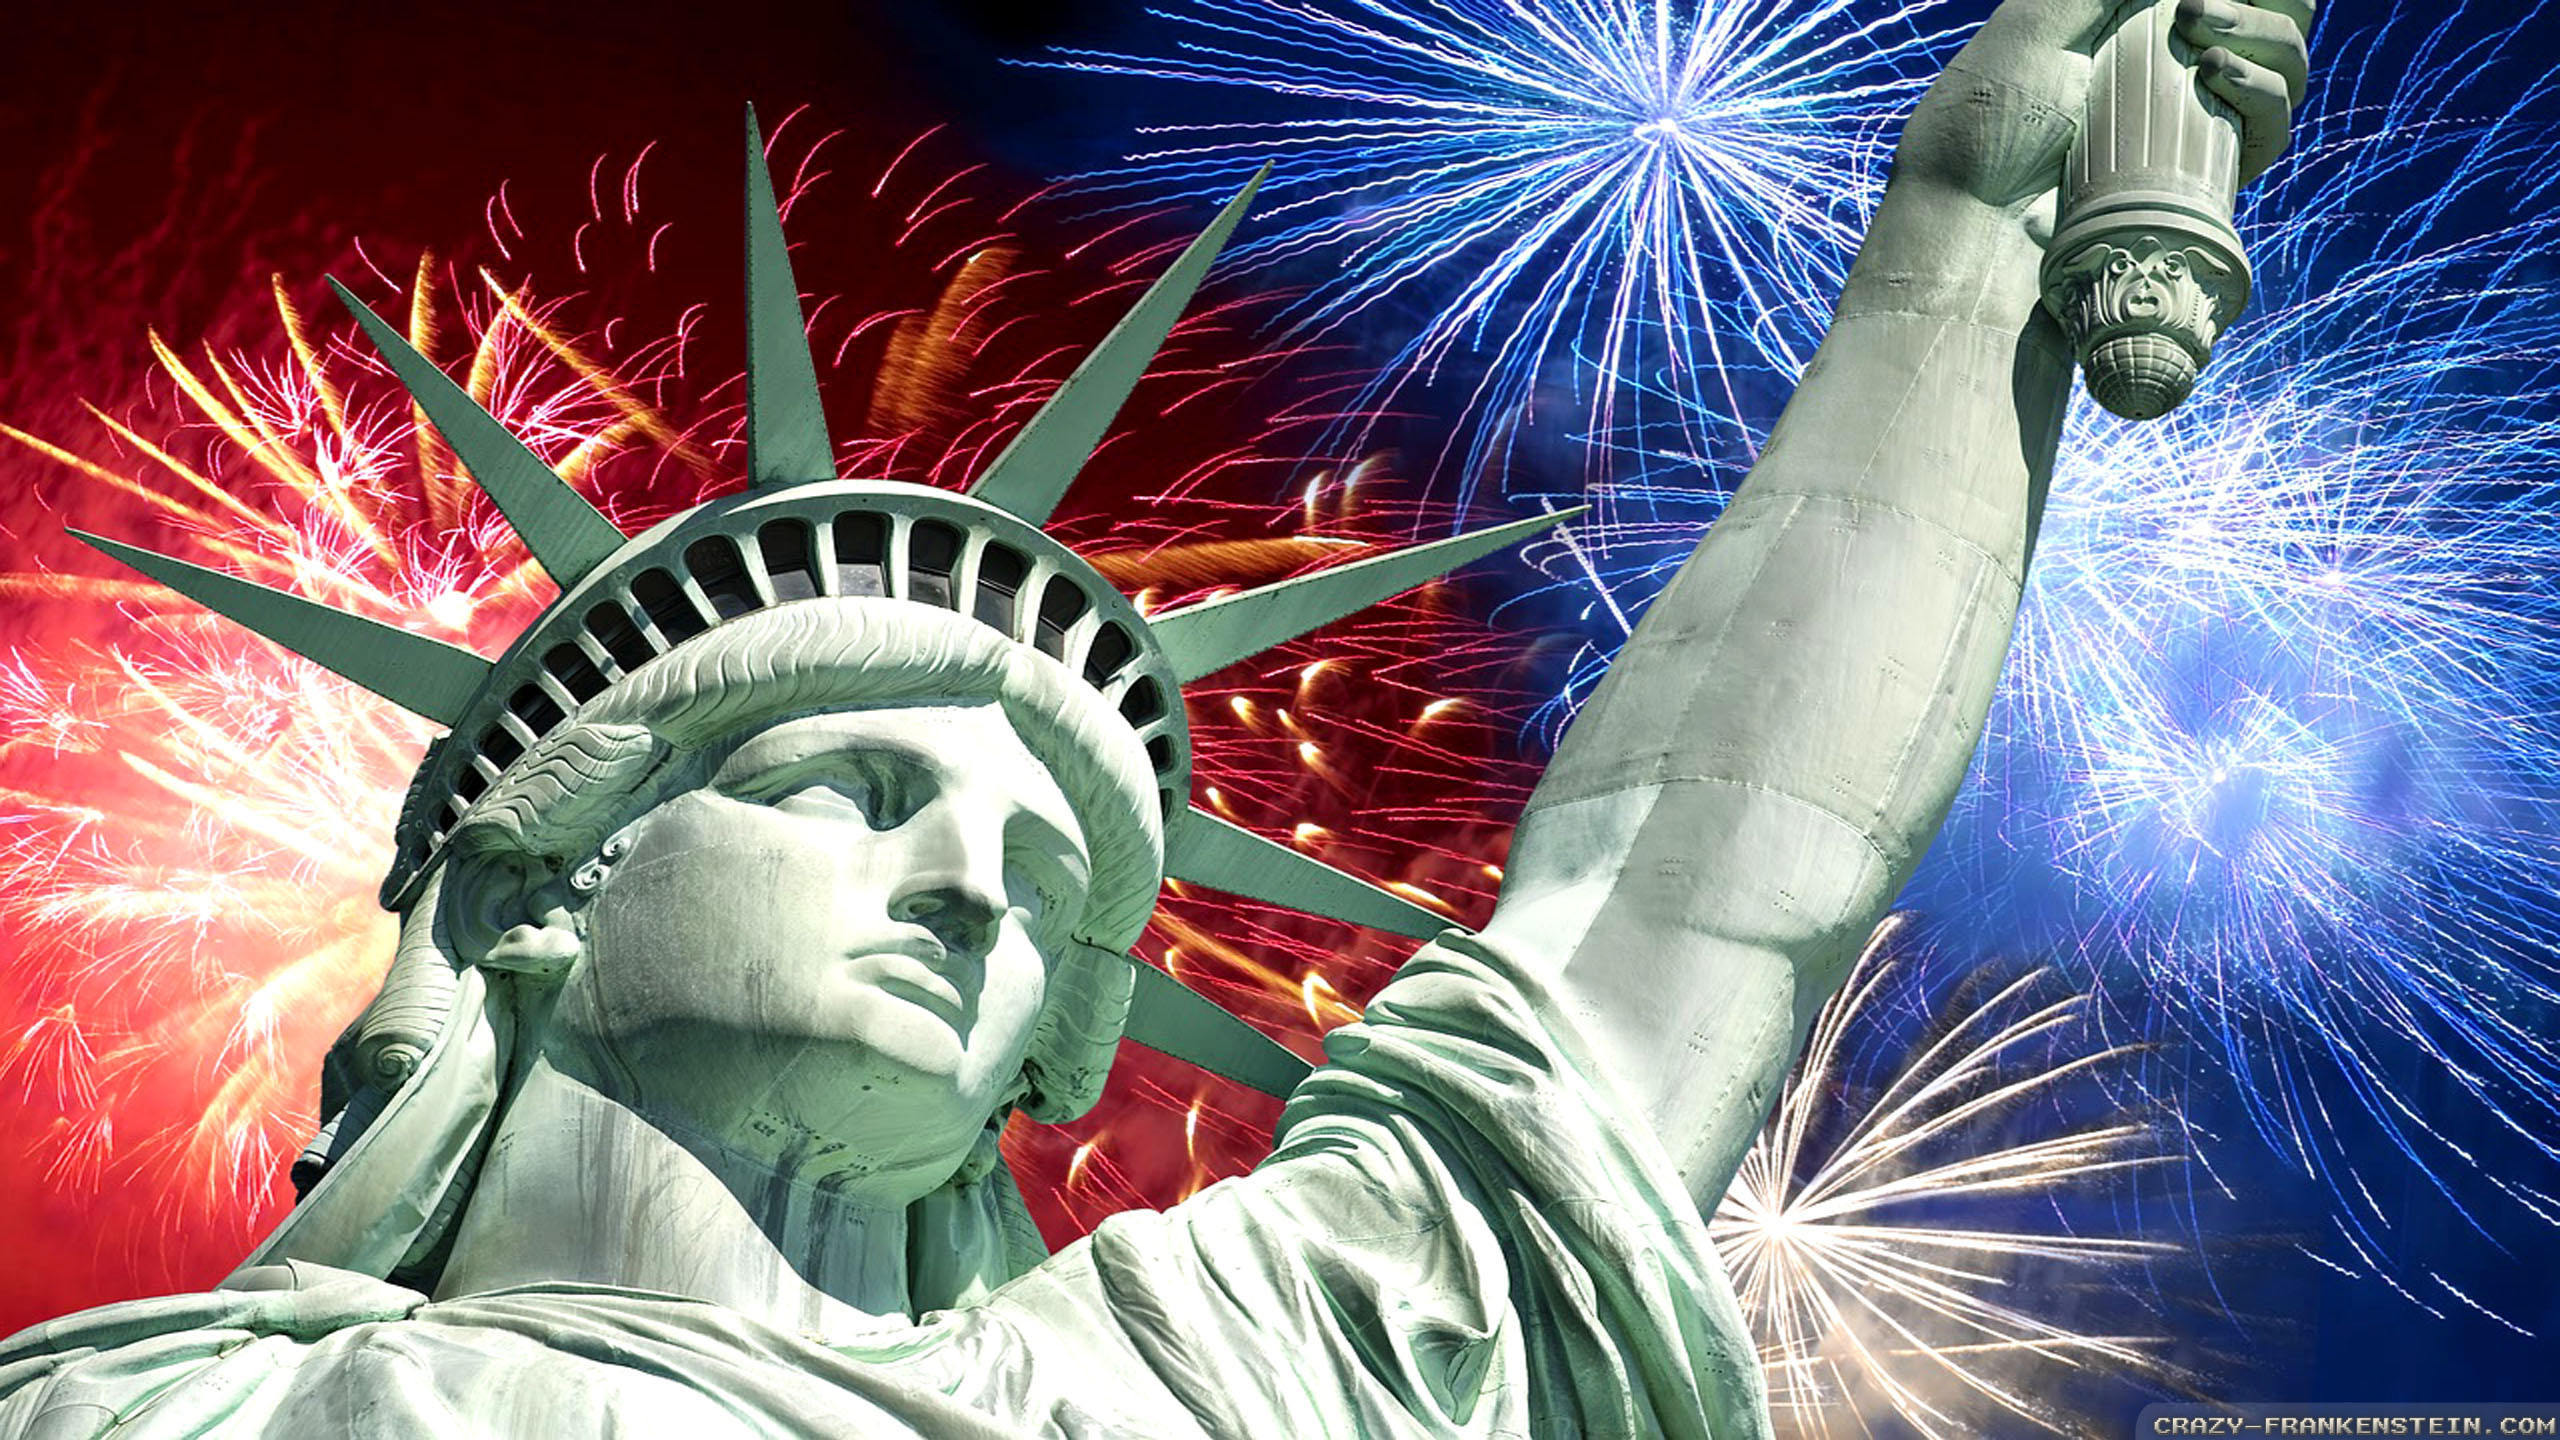 July 4th Fireworks wallpapers – Independence Day wallpapers – Crazy .